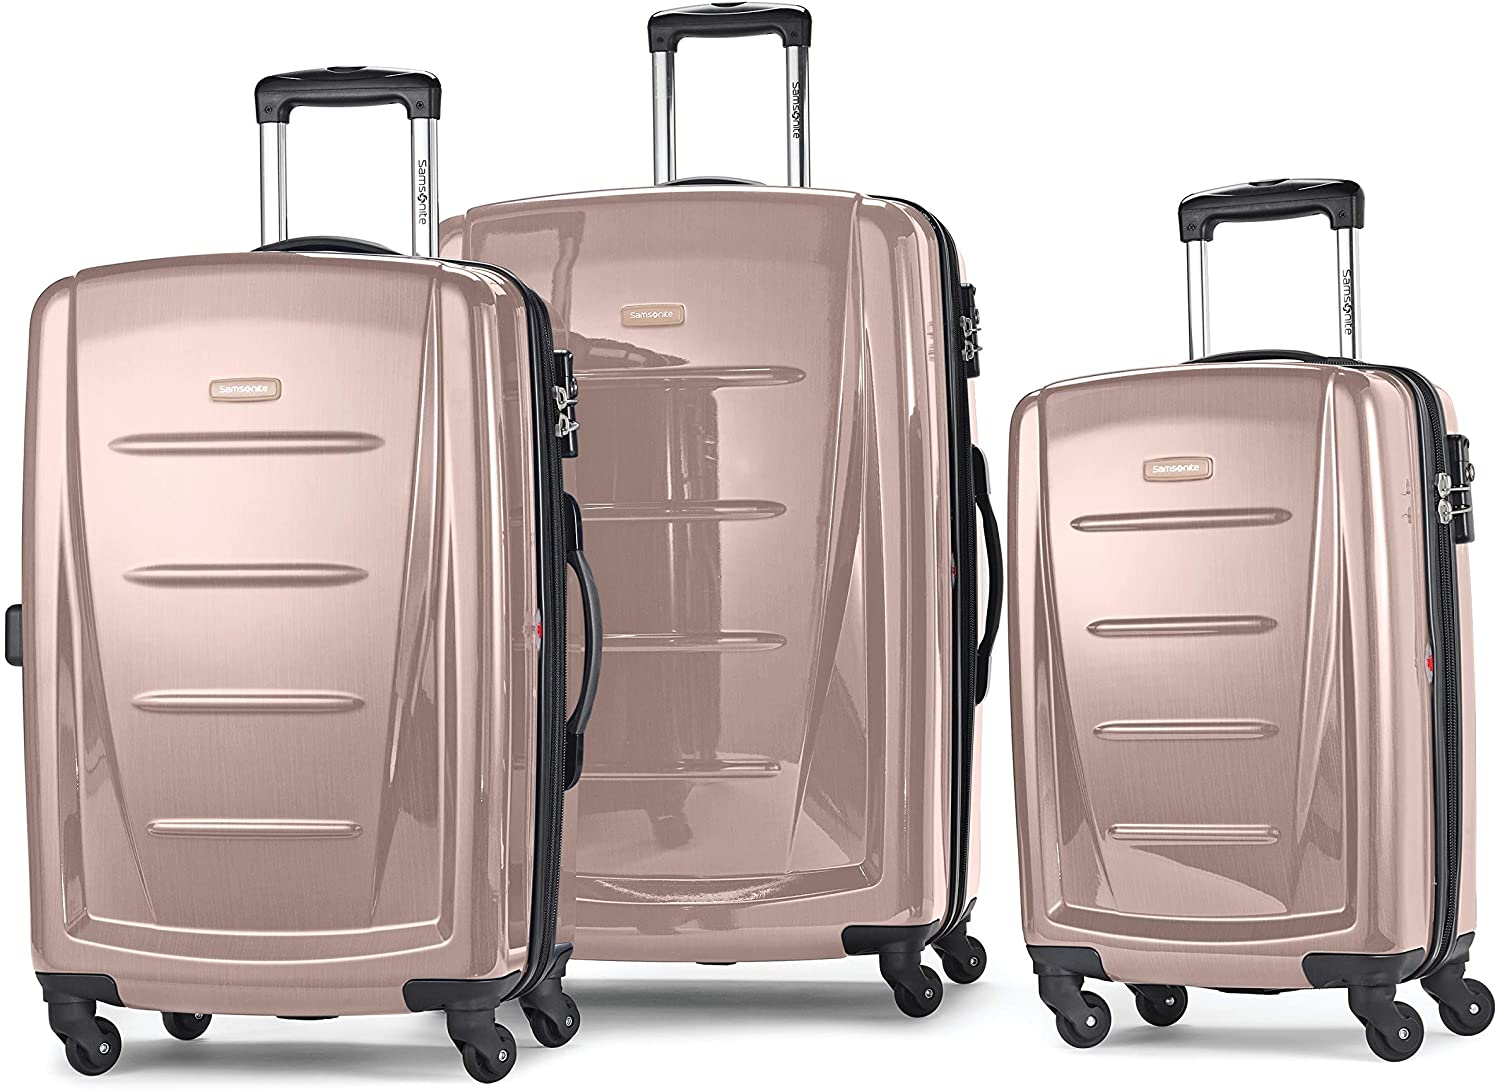 Samsonite Winfield 2 Hardside Expandable Luggage with Spinner Wheels, Artic Pink, 3-Piece Set (20/24/28)